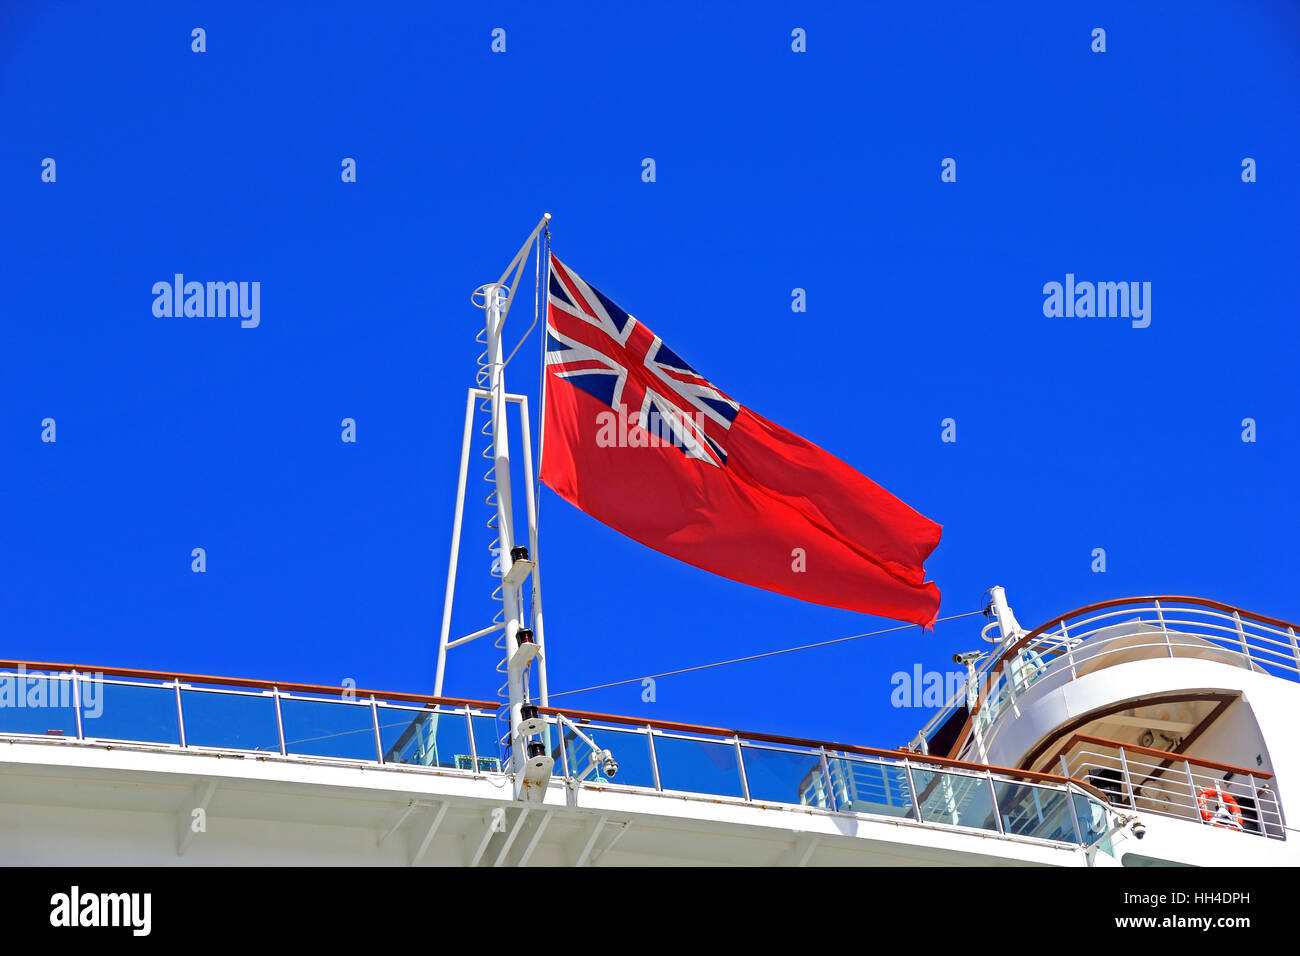 The Red Ensign being flown on P & O cruise ship Azura - Stock Image